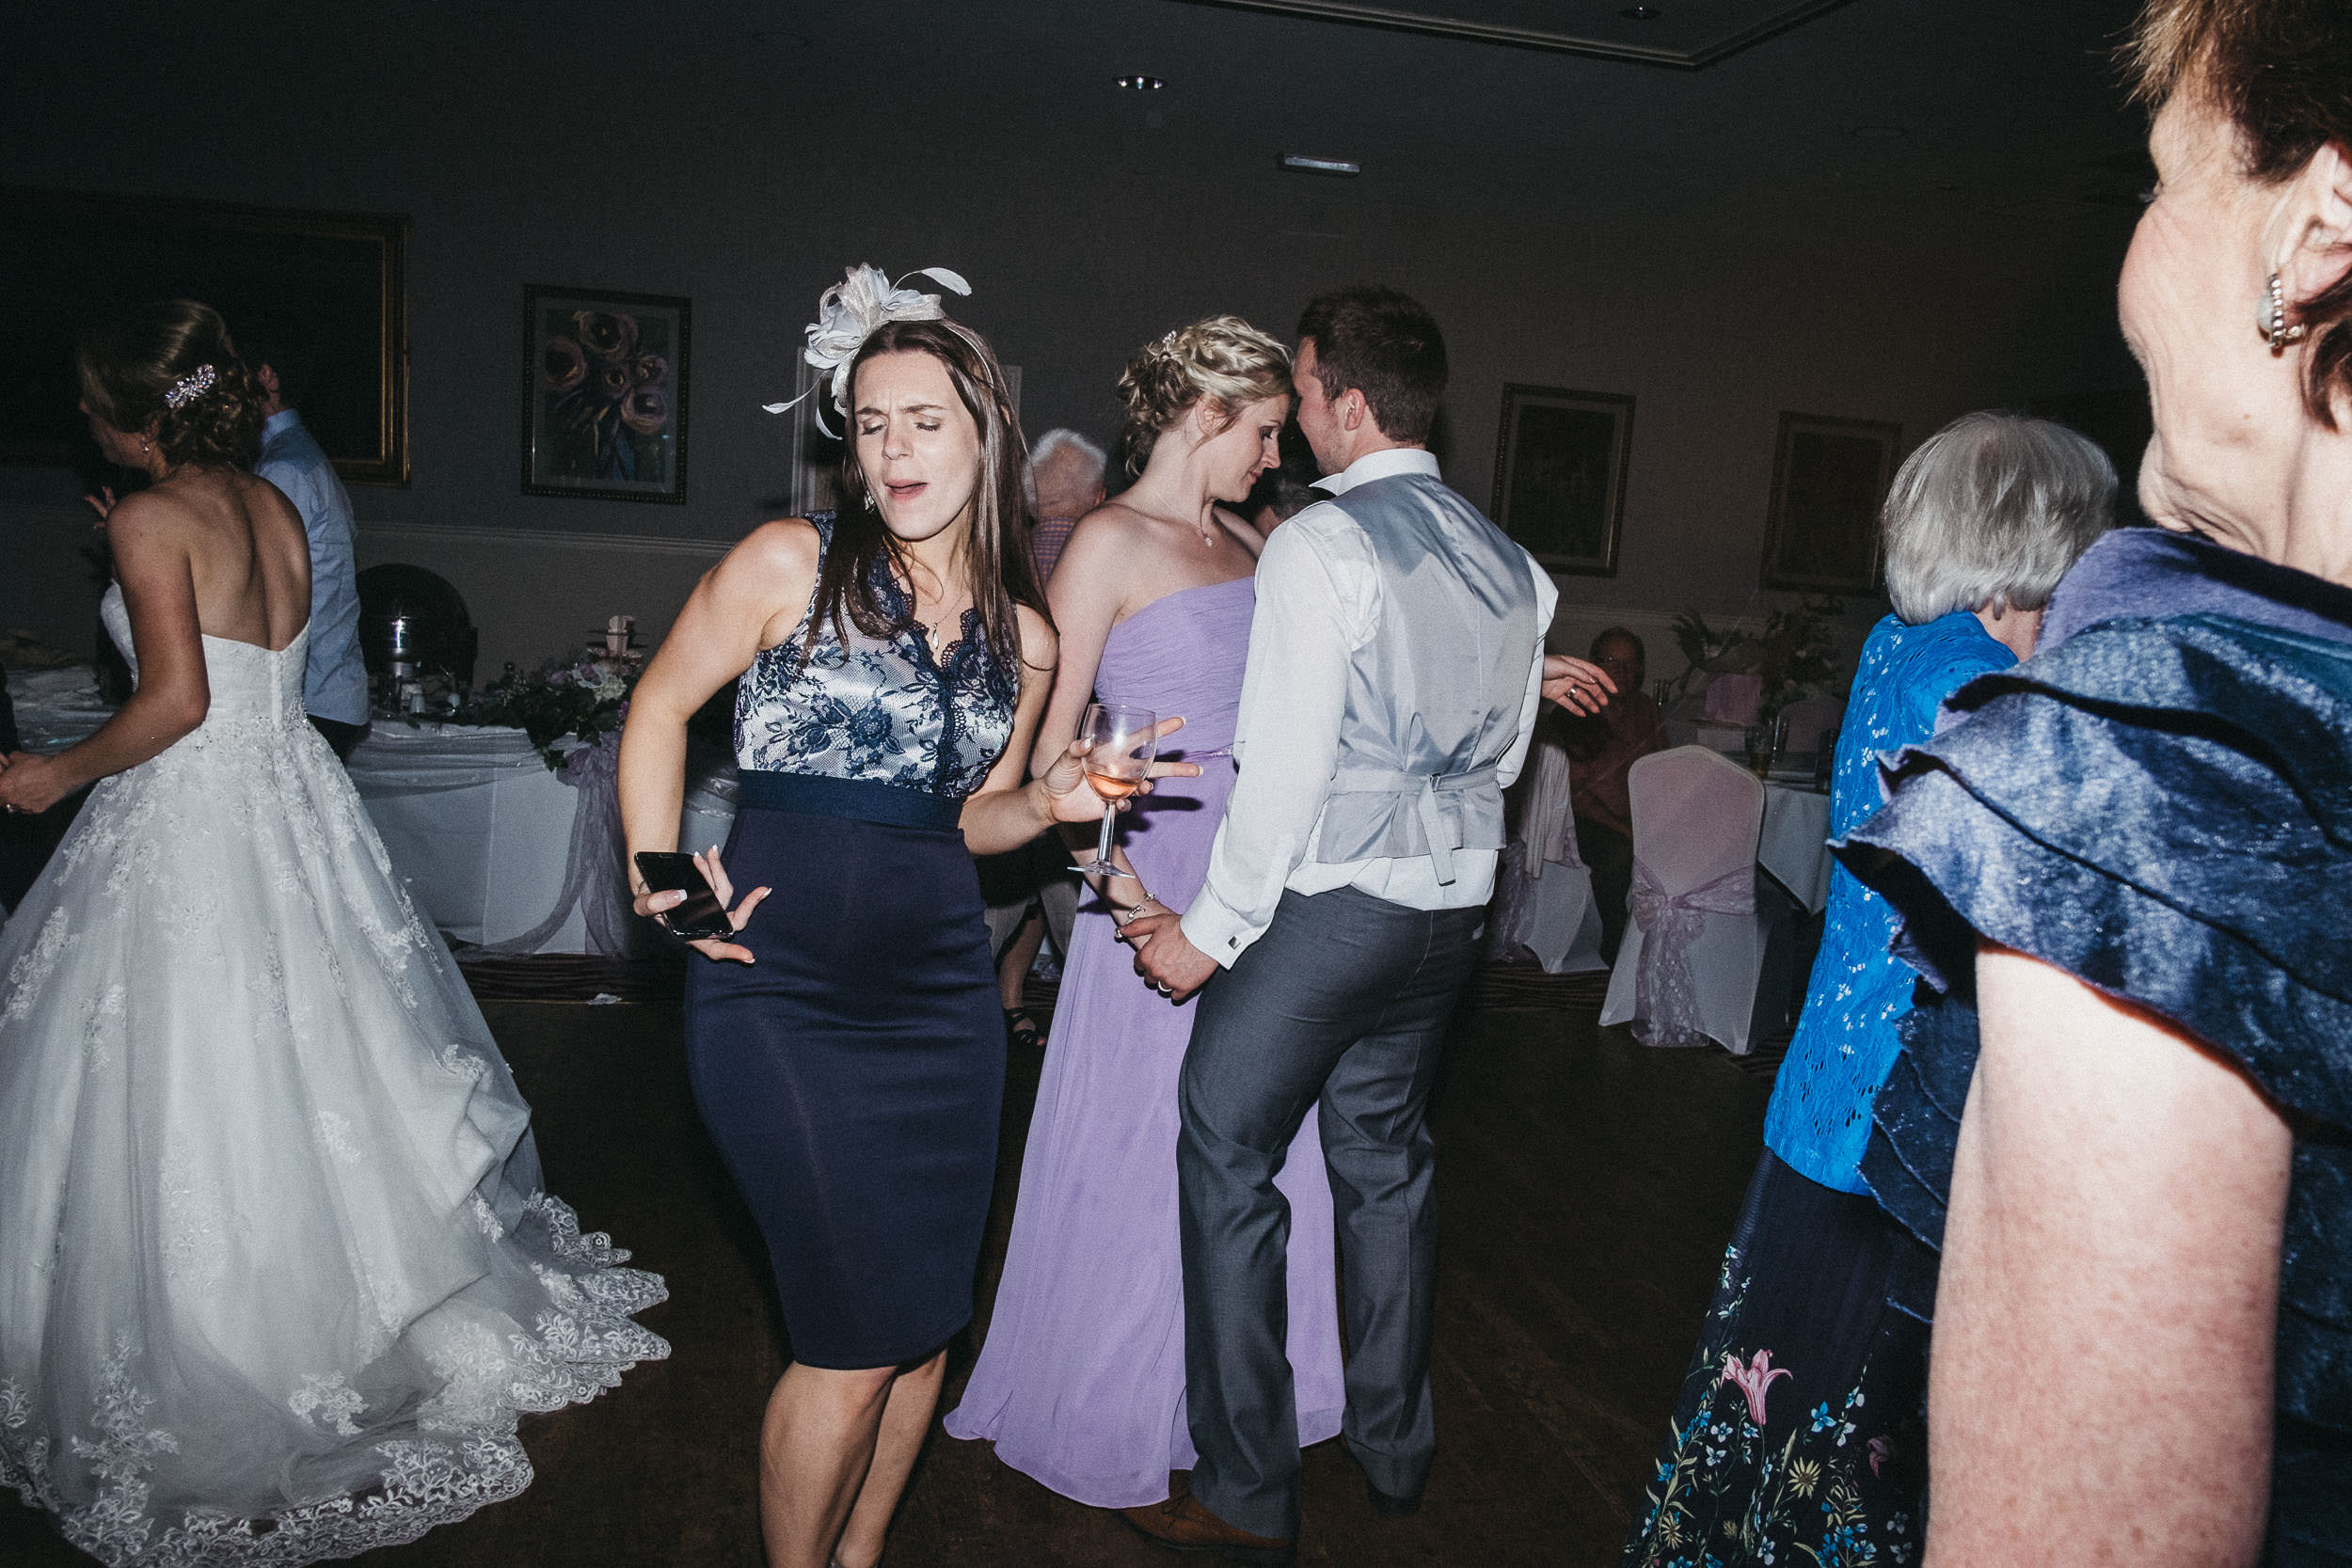 Quirky photo of wedding guests dancing awkwardly